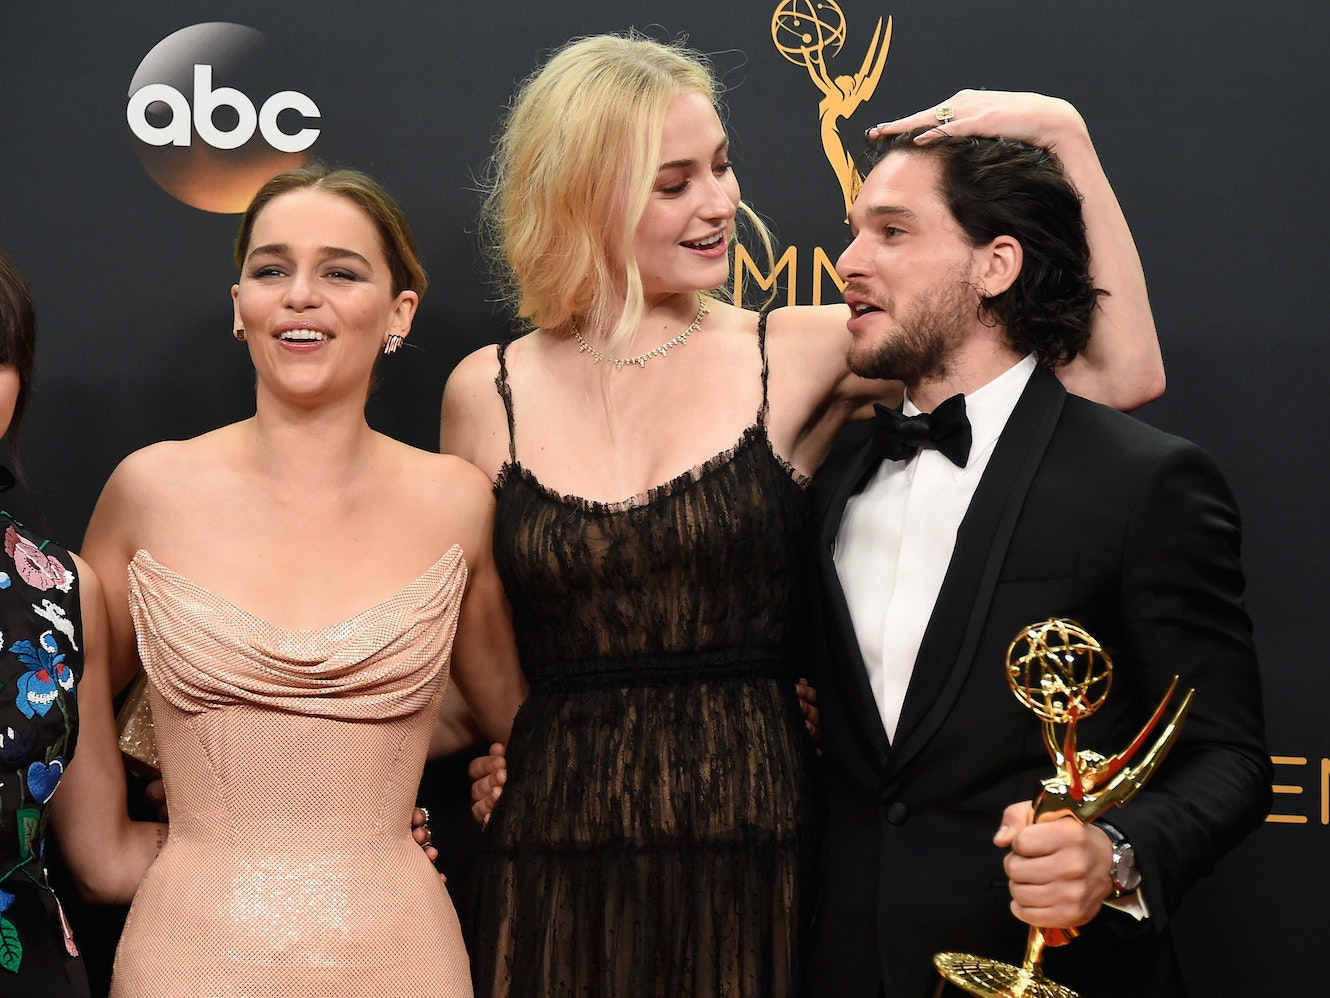 George R.R. Martin Has Lots of 'Game of Thrones' Spinoff Plans